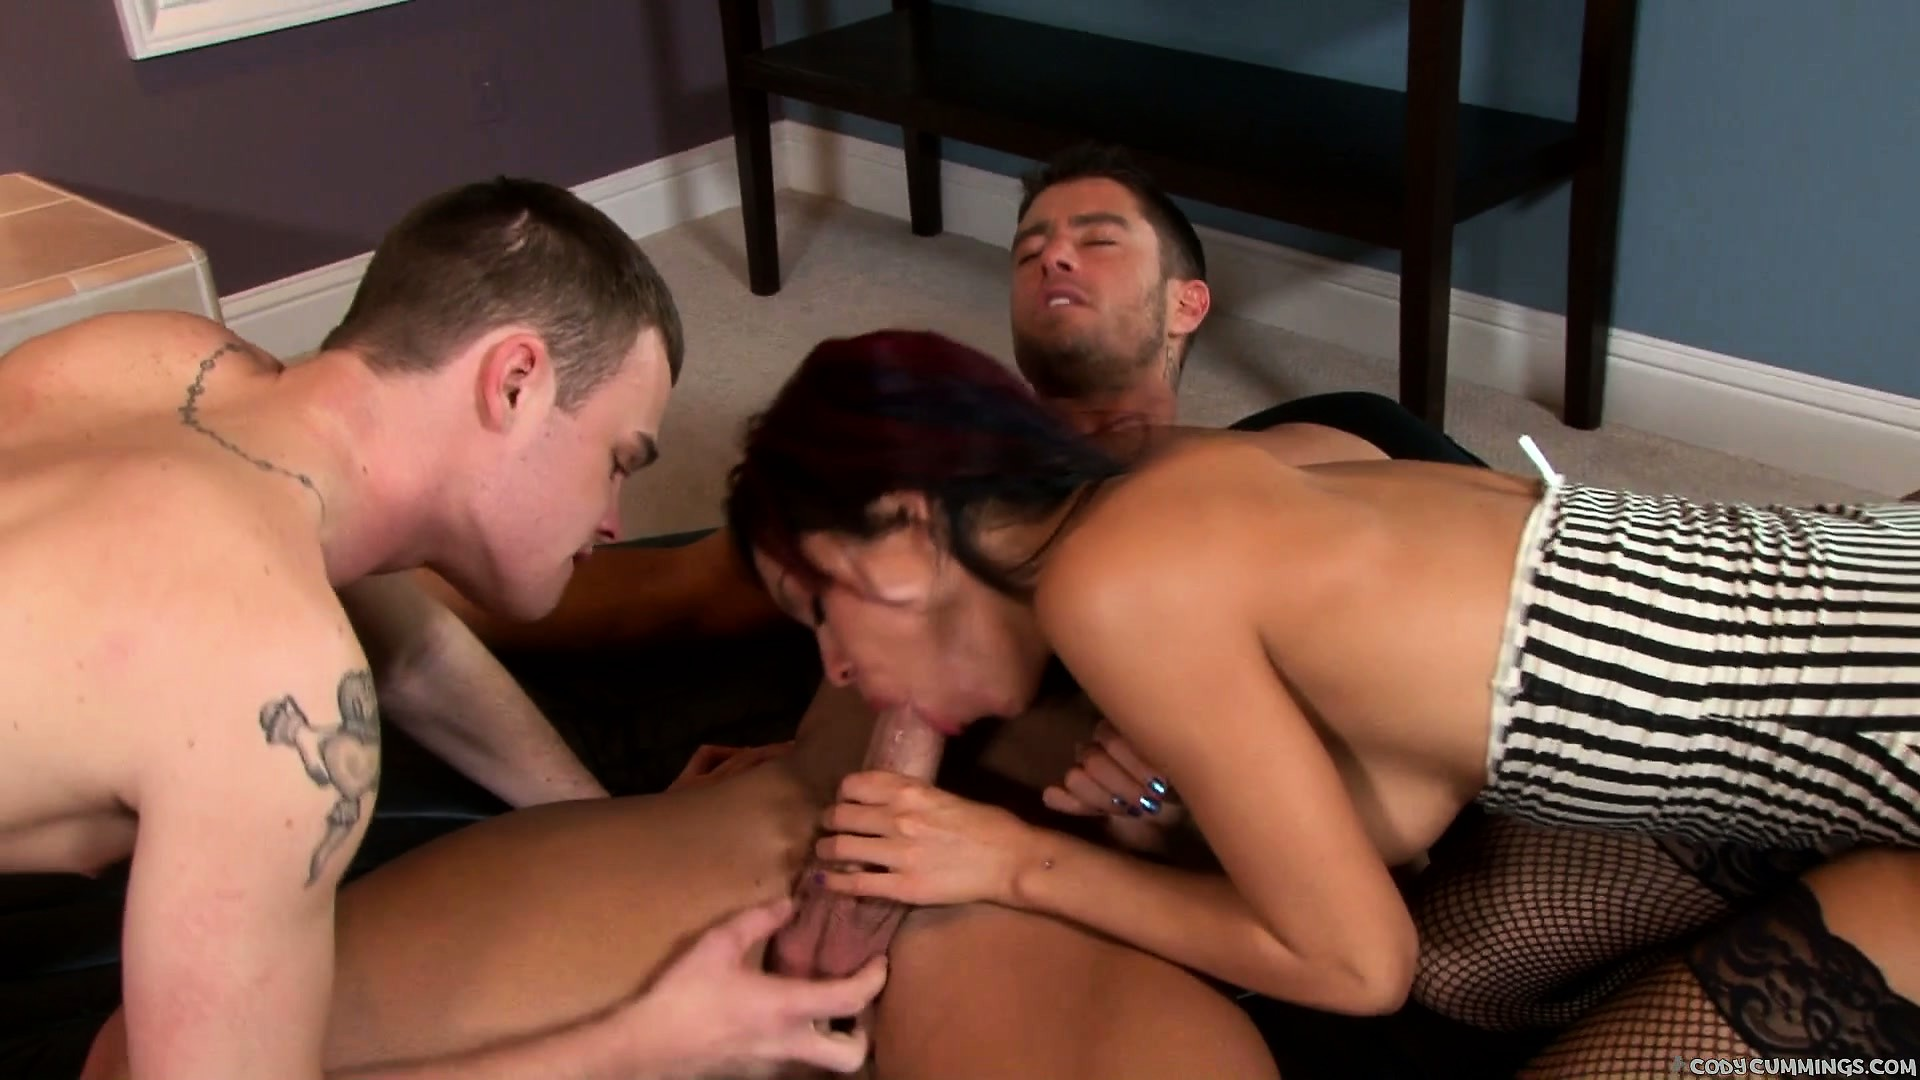 Porn Tube of A Pair Of Bisexual Hunks Gets Down And Dirty With A Brunette